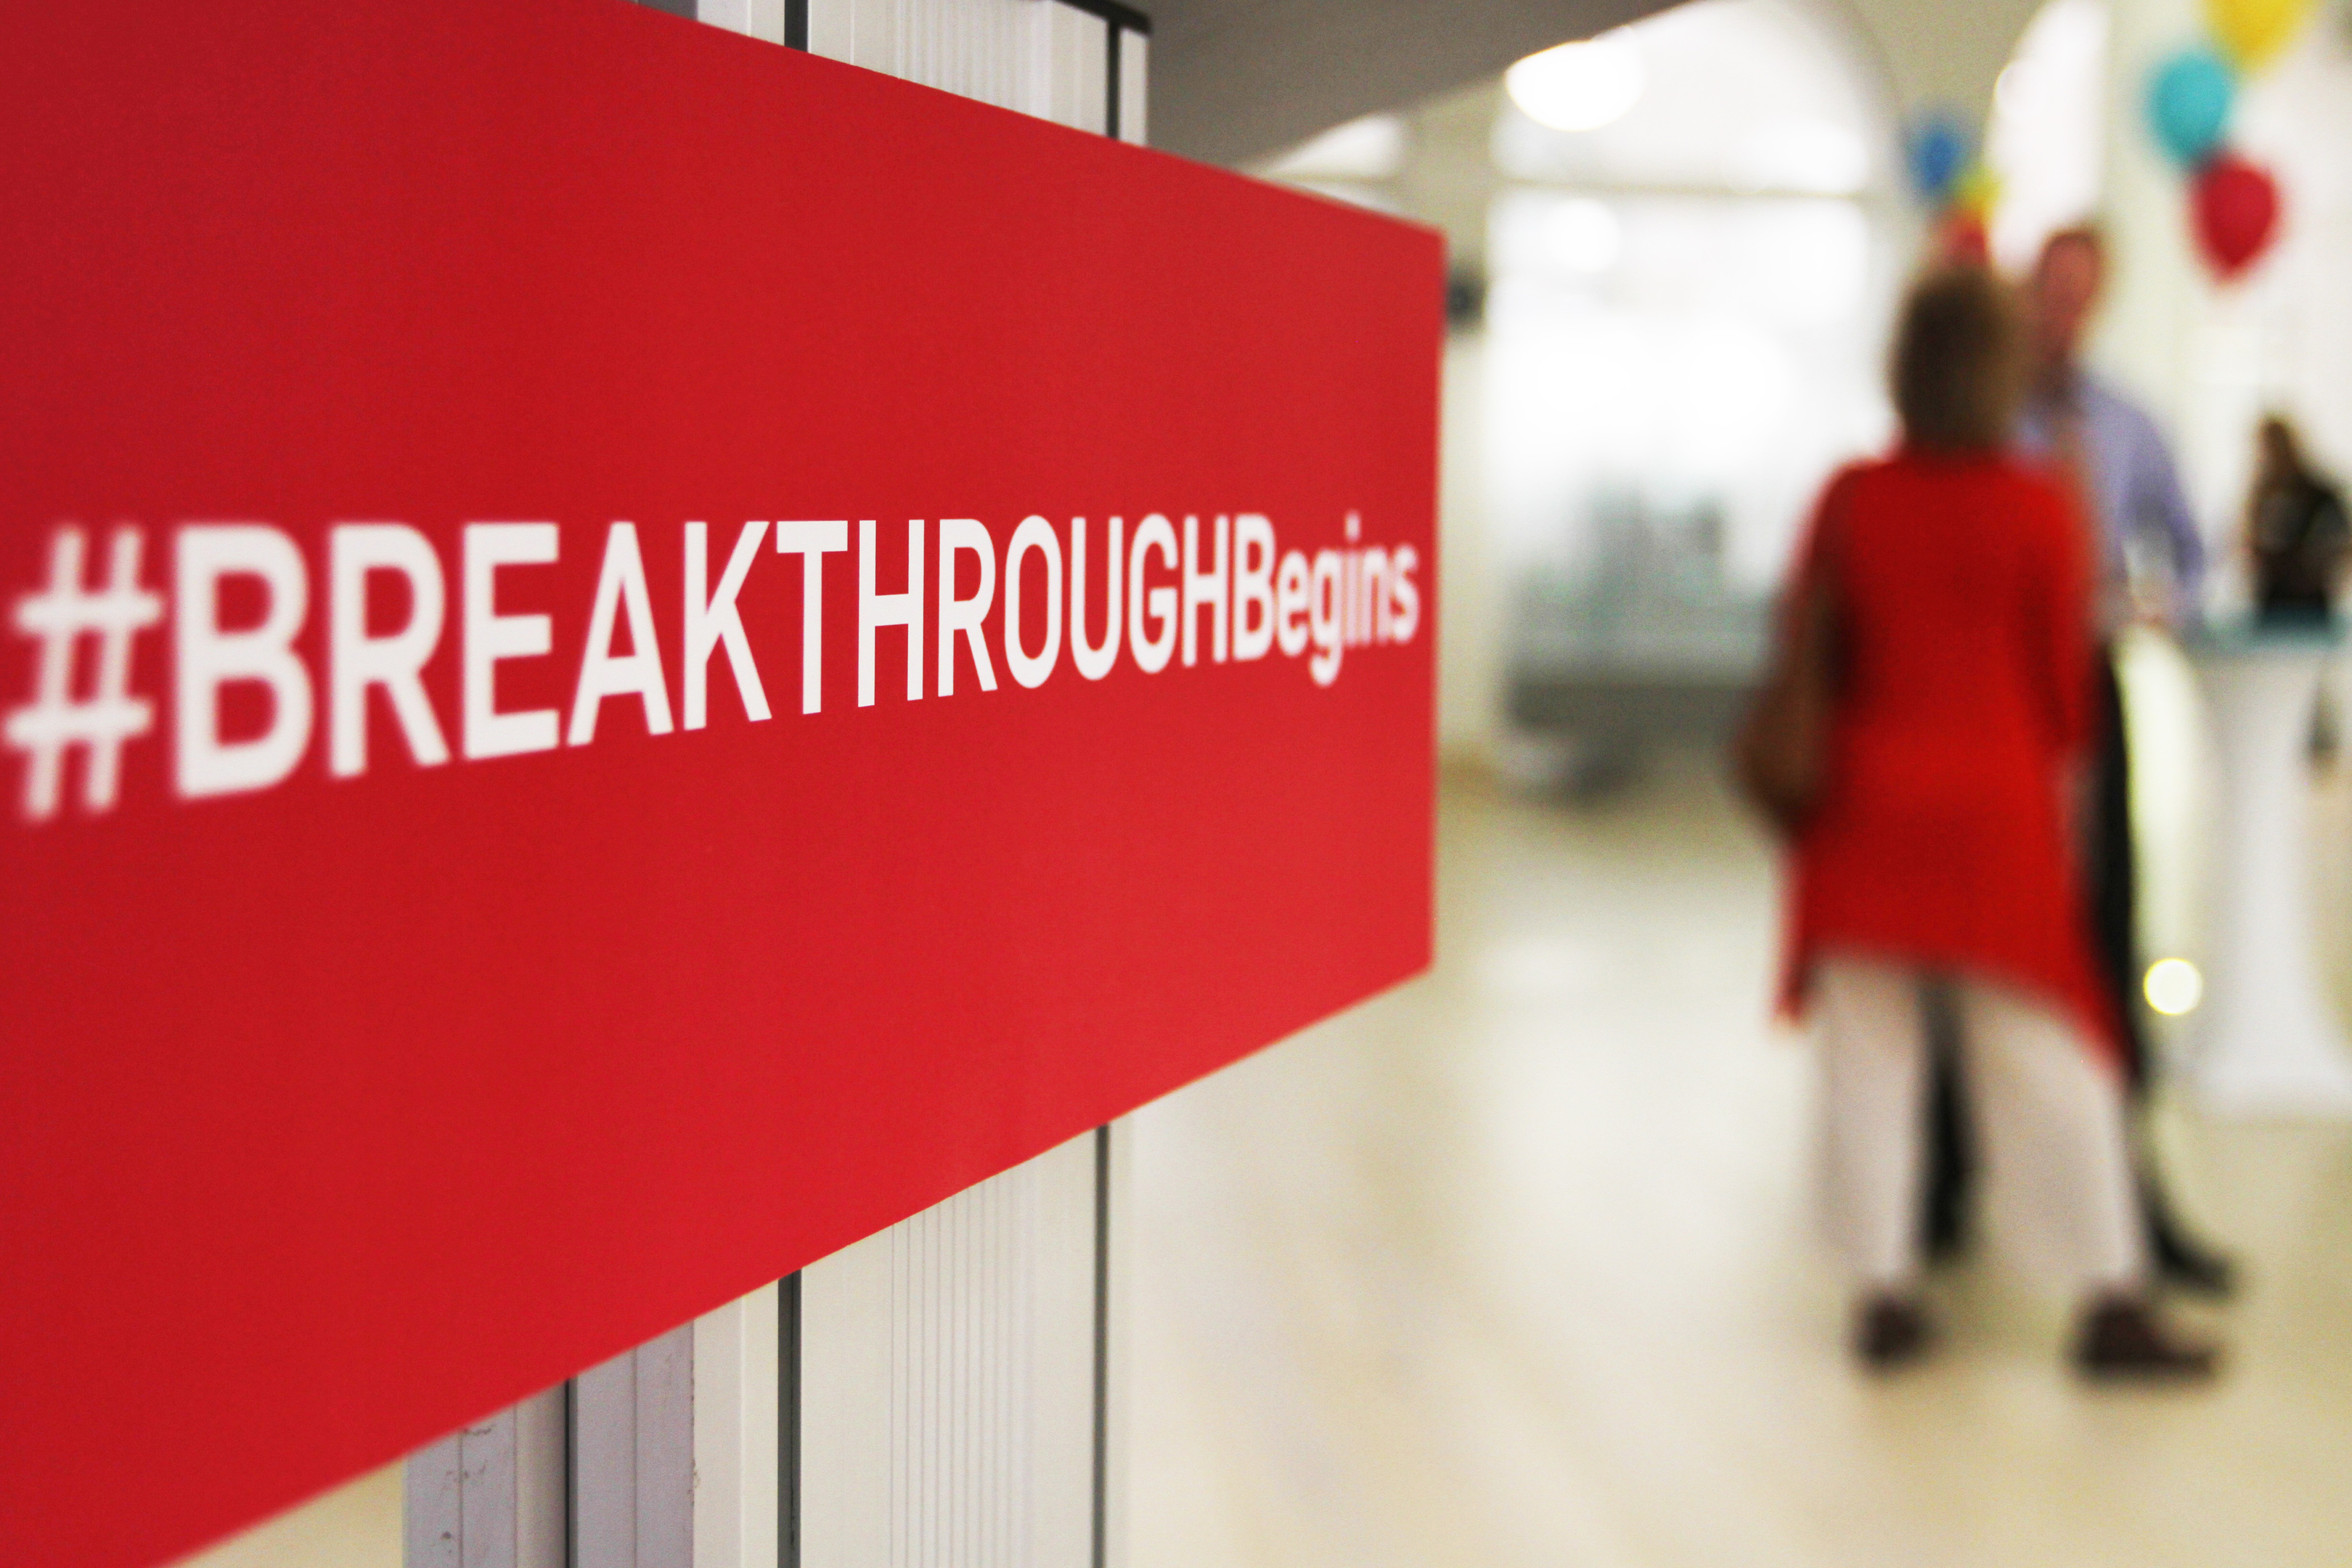 Breakthrough is celebrating its first anniversary.